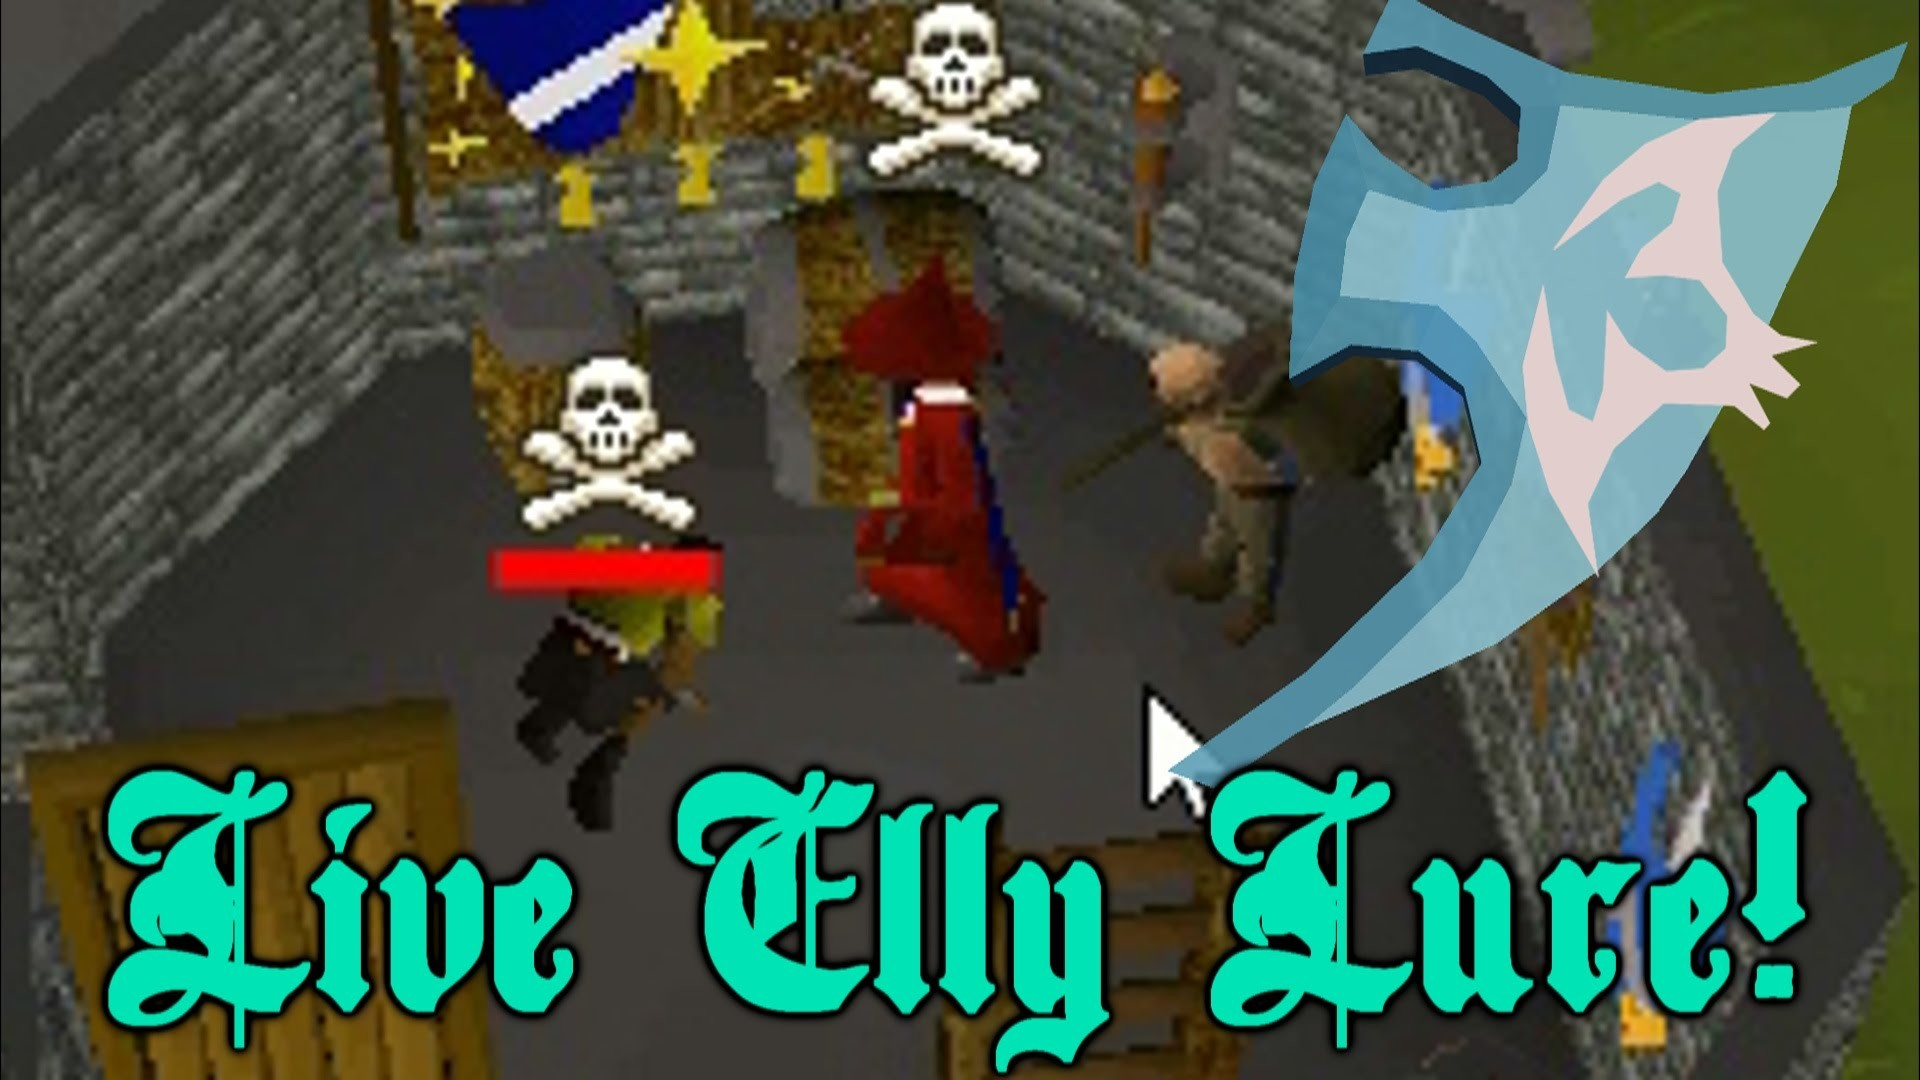 Live Luring a Kid for his Elly and Cash (OSRS) OLDSCHOOL RUNESCAPE LURING  VID 2016